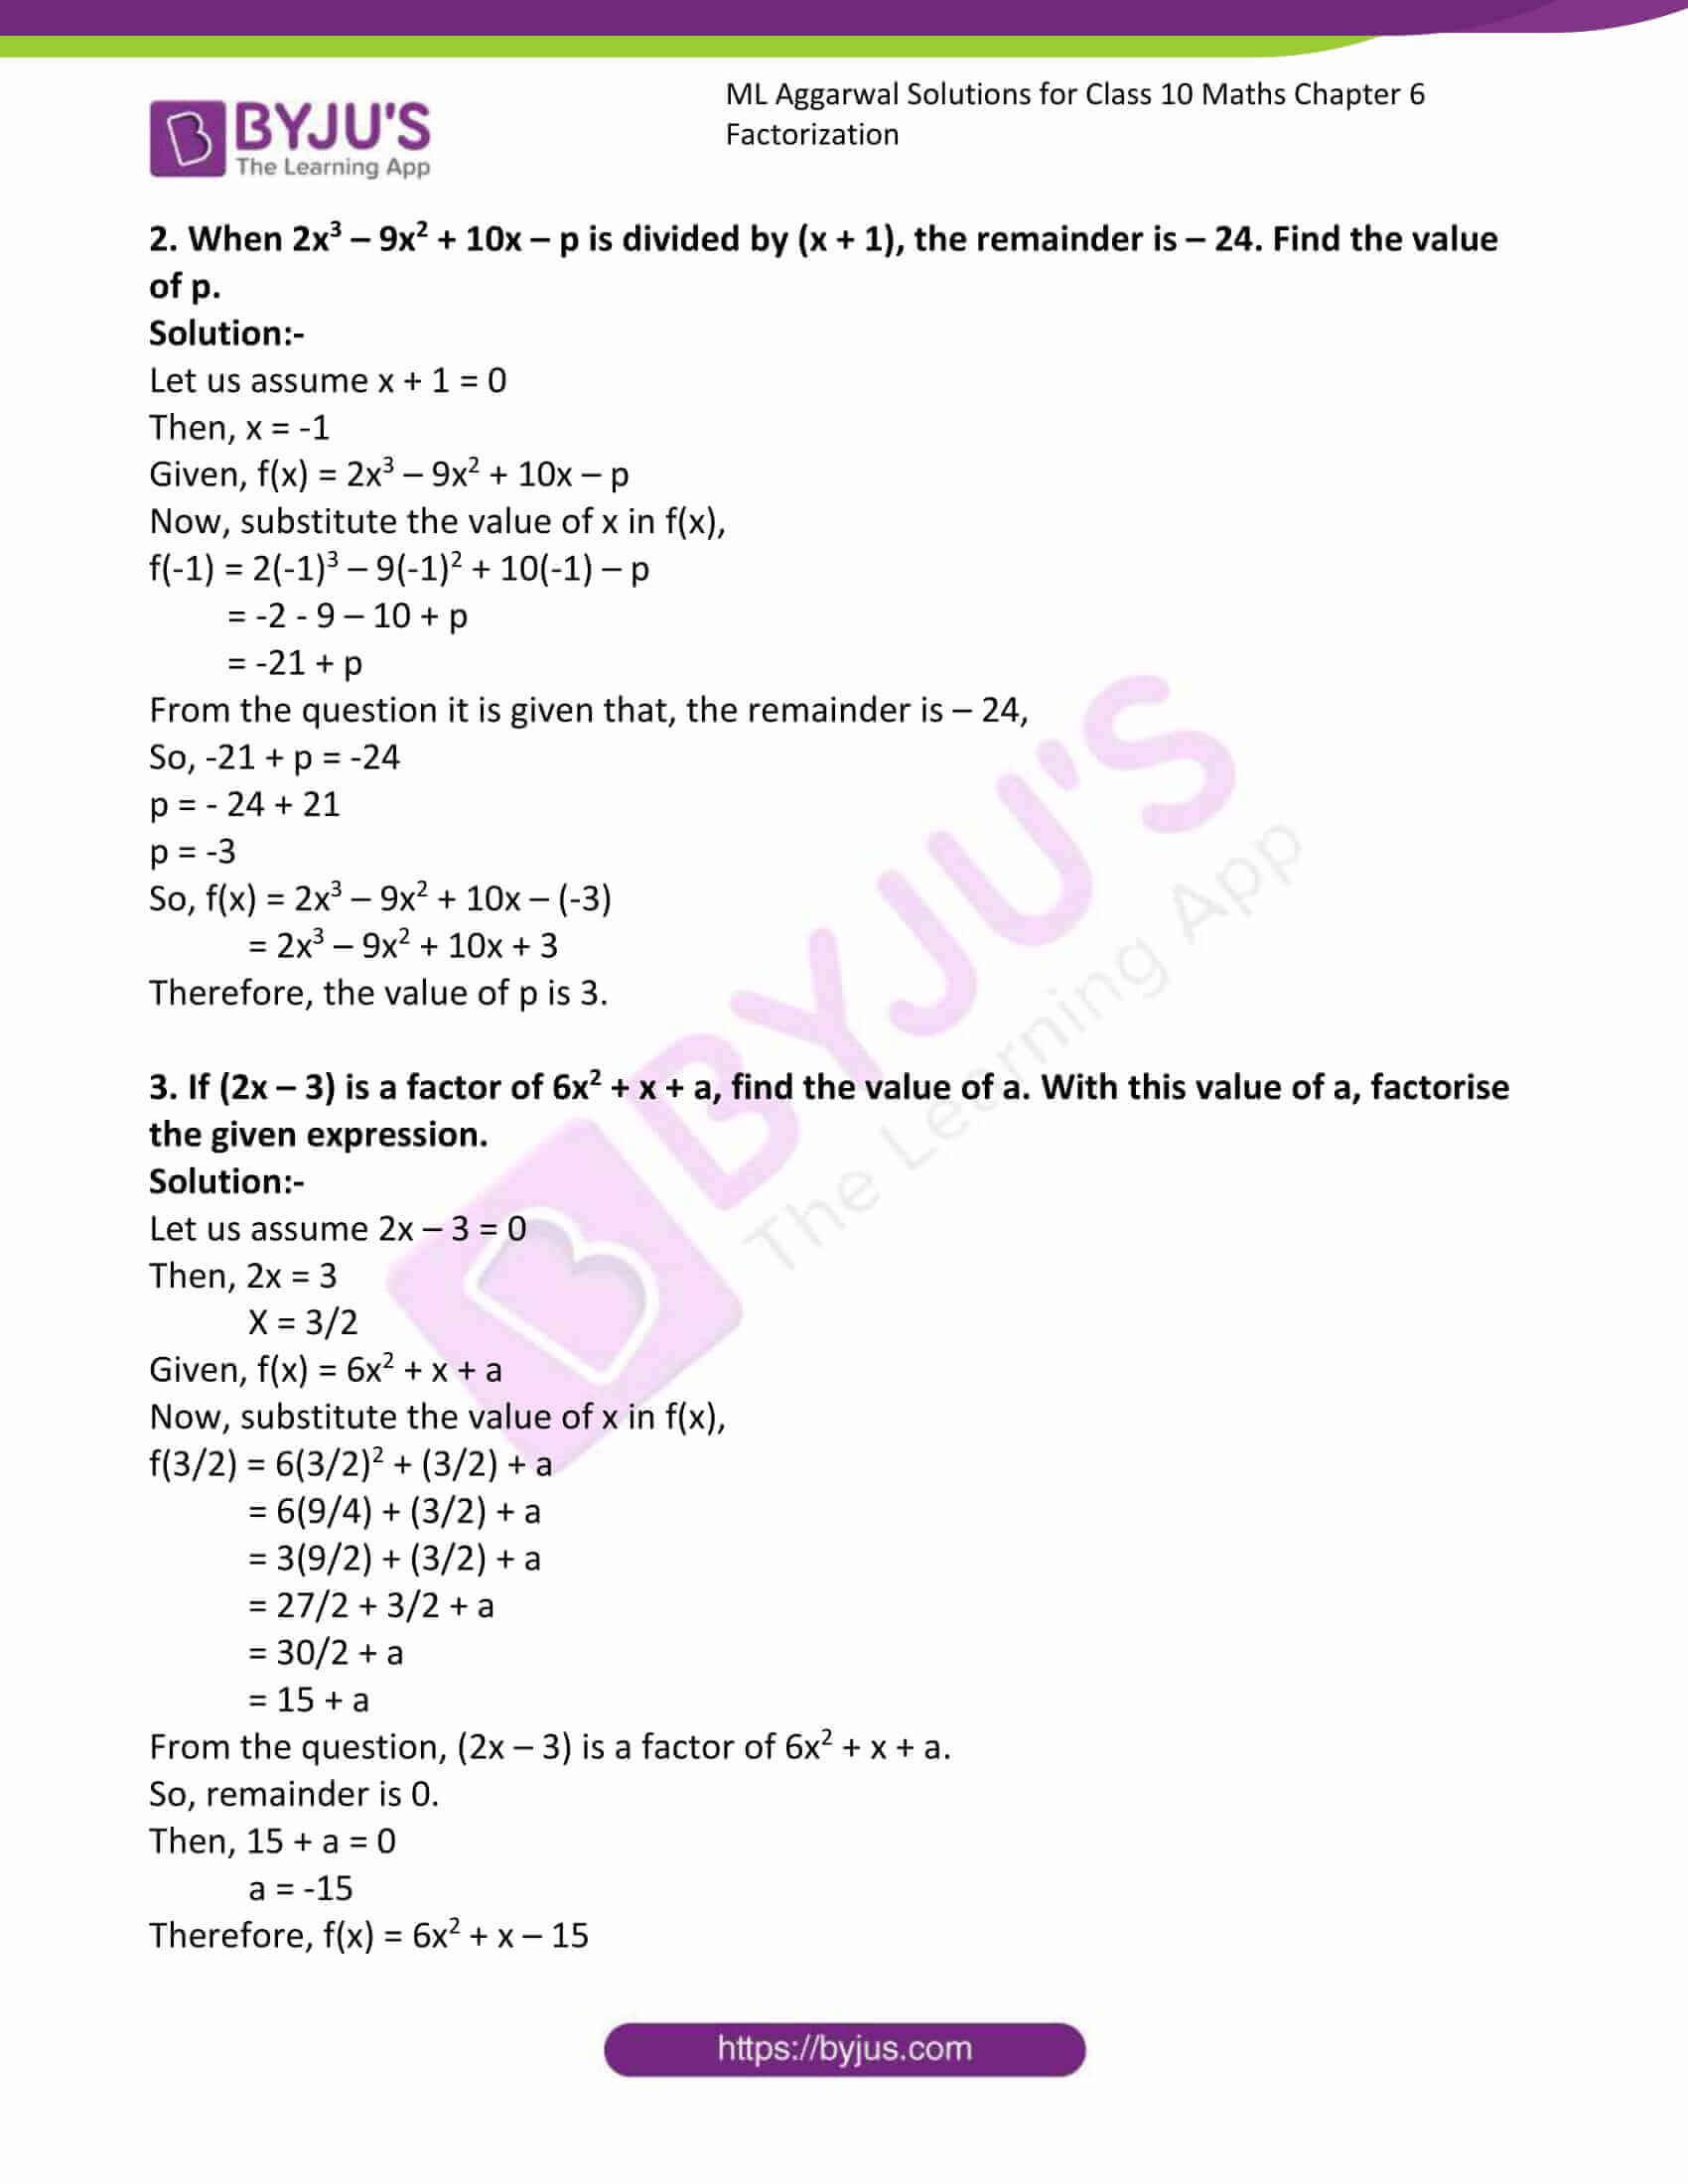 ml aggarwal solutions class 10 maths chapter 6 31